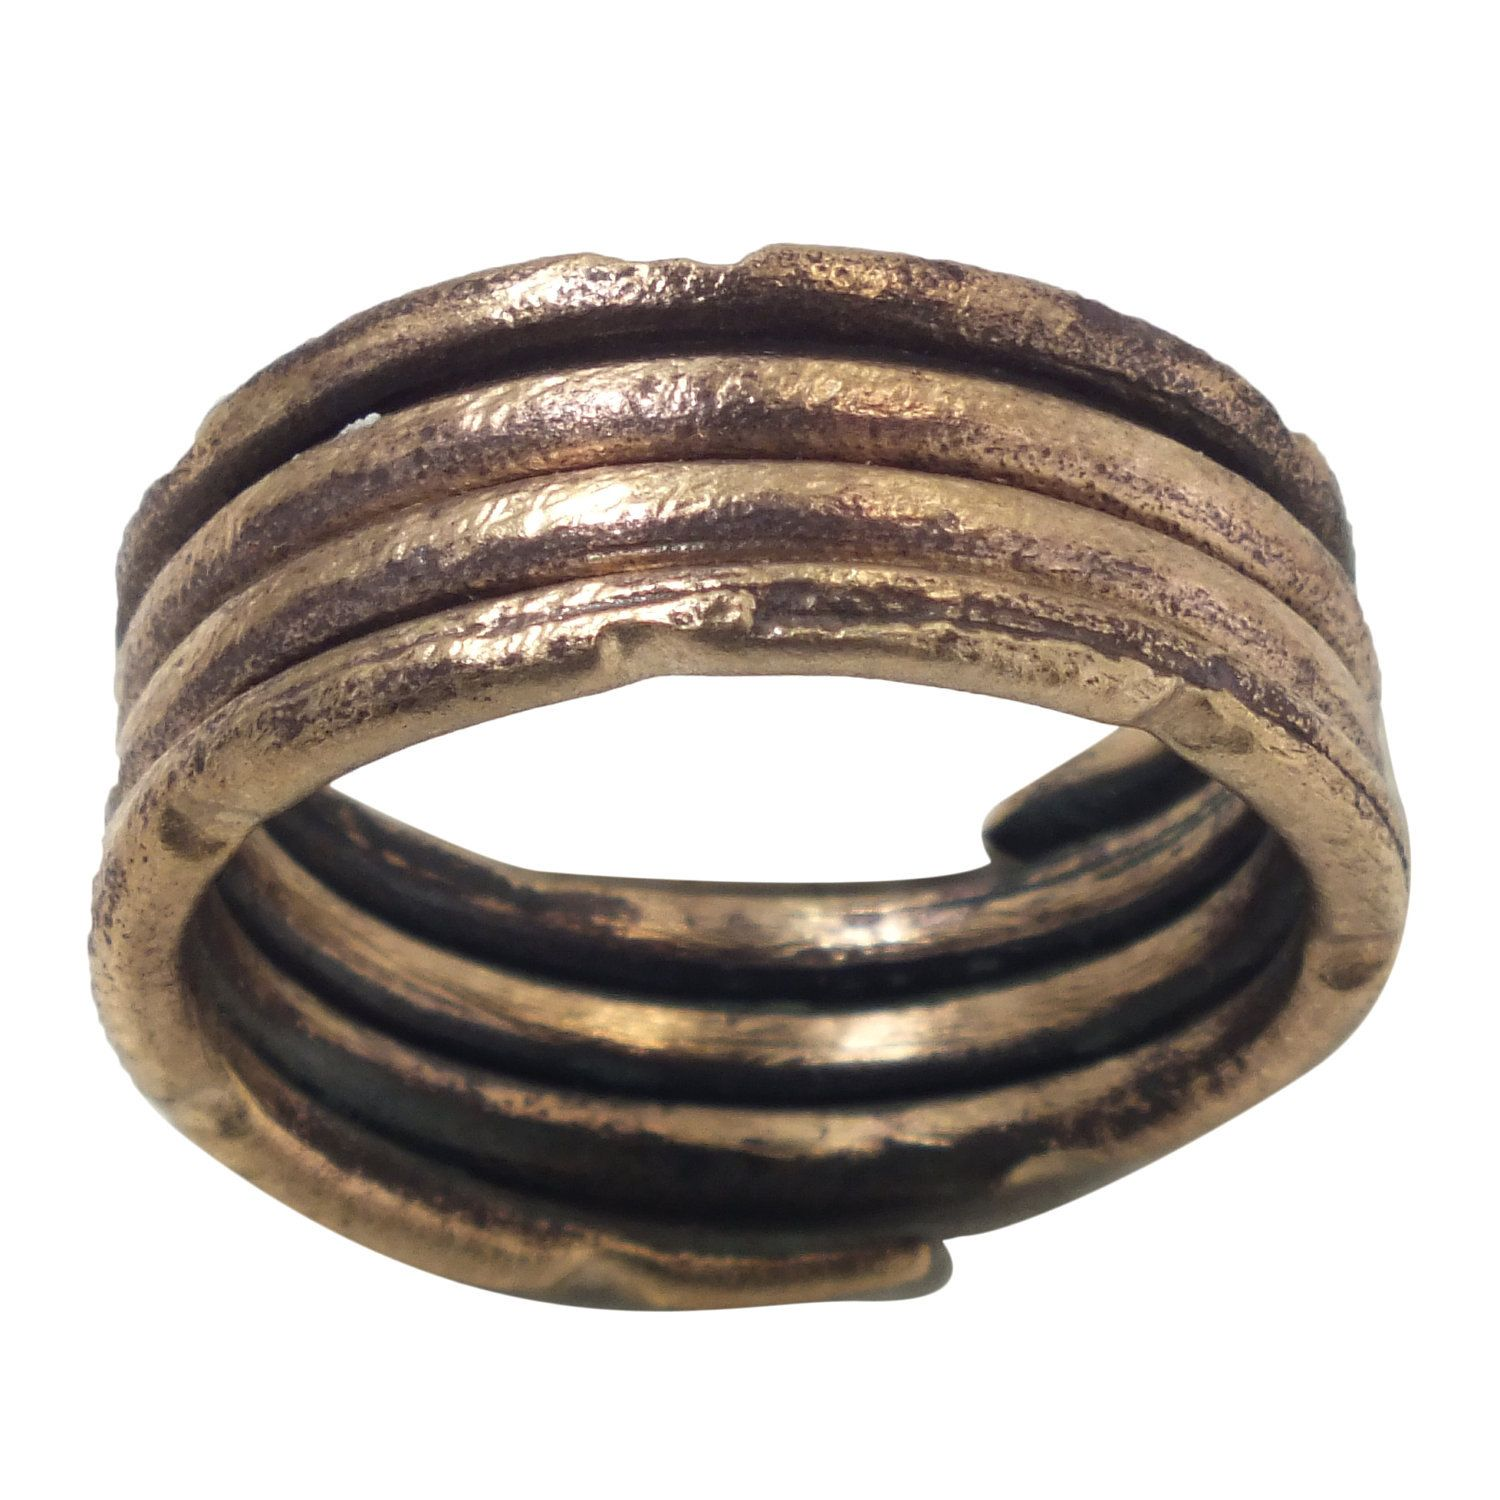 Ancient Viking Womens or Mans Wedding Ring